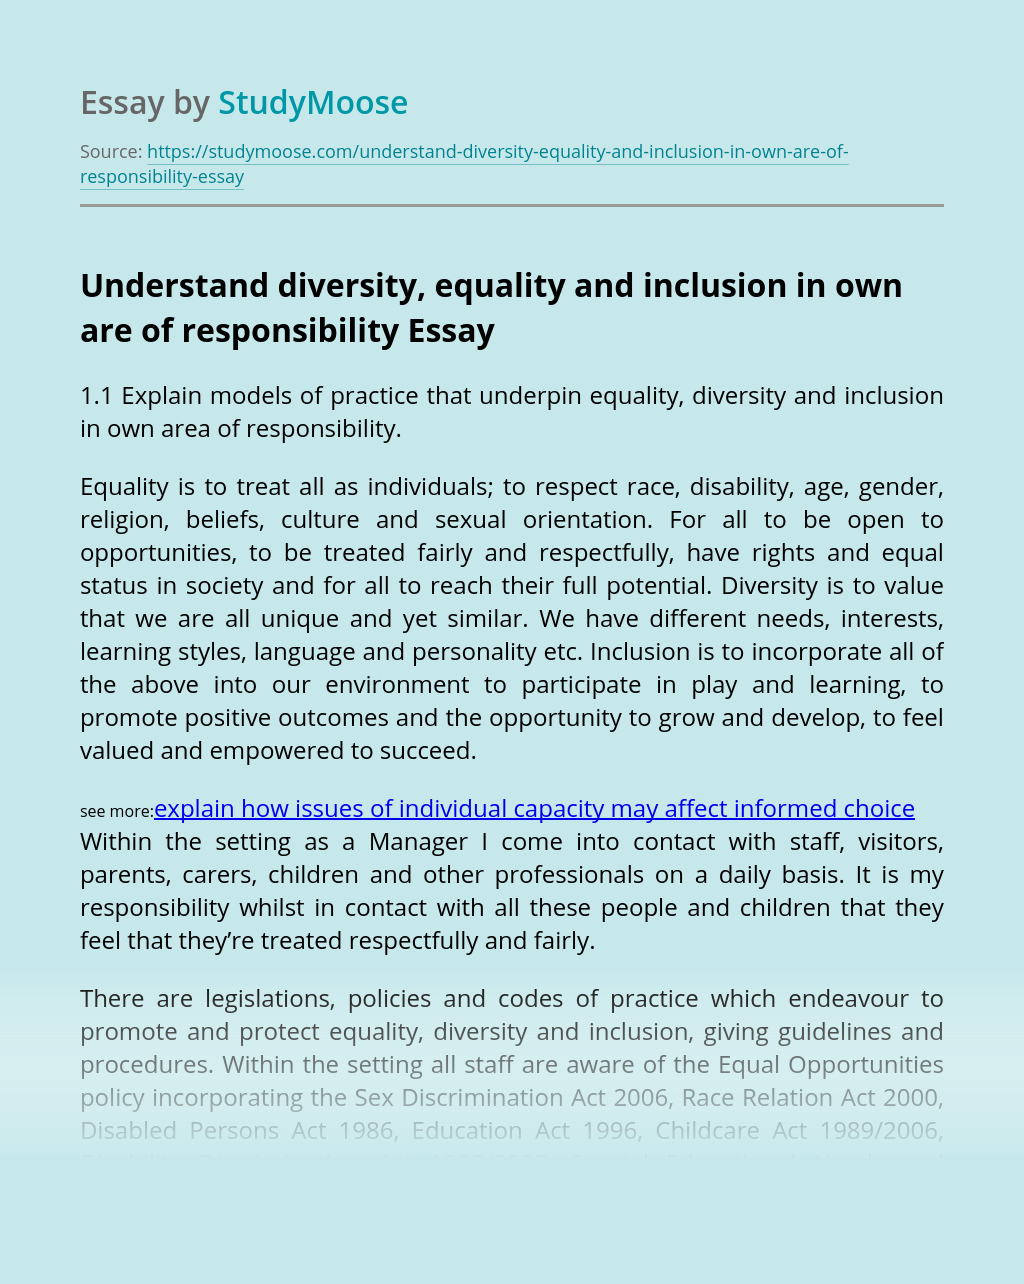 Understand diversity, equality and inclusion in own are of responsibility